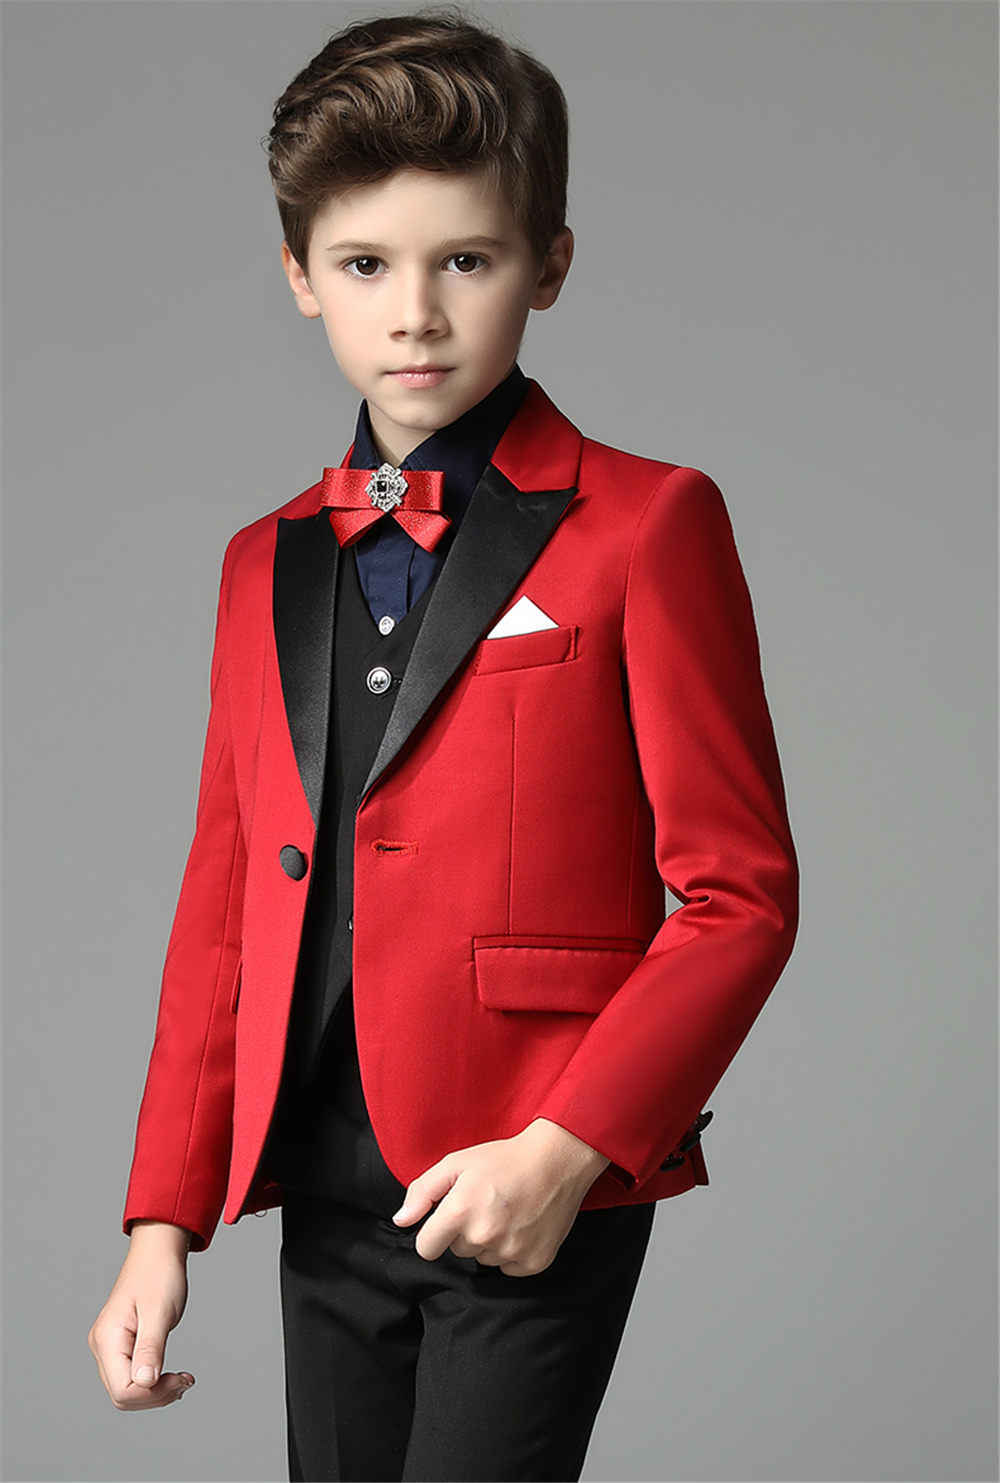 d651a9e97848 Detail Feedback Questions about 2018 New 3 pieces Boys Red Wedding Suit  Brand England Style Gentle Boys Formal Tuxedos Suit Kids Spring Clothing  Set on ...